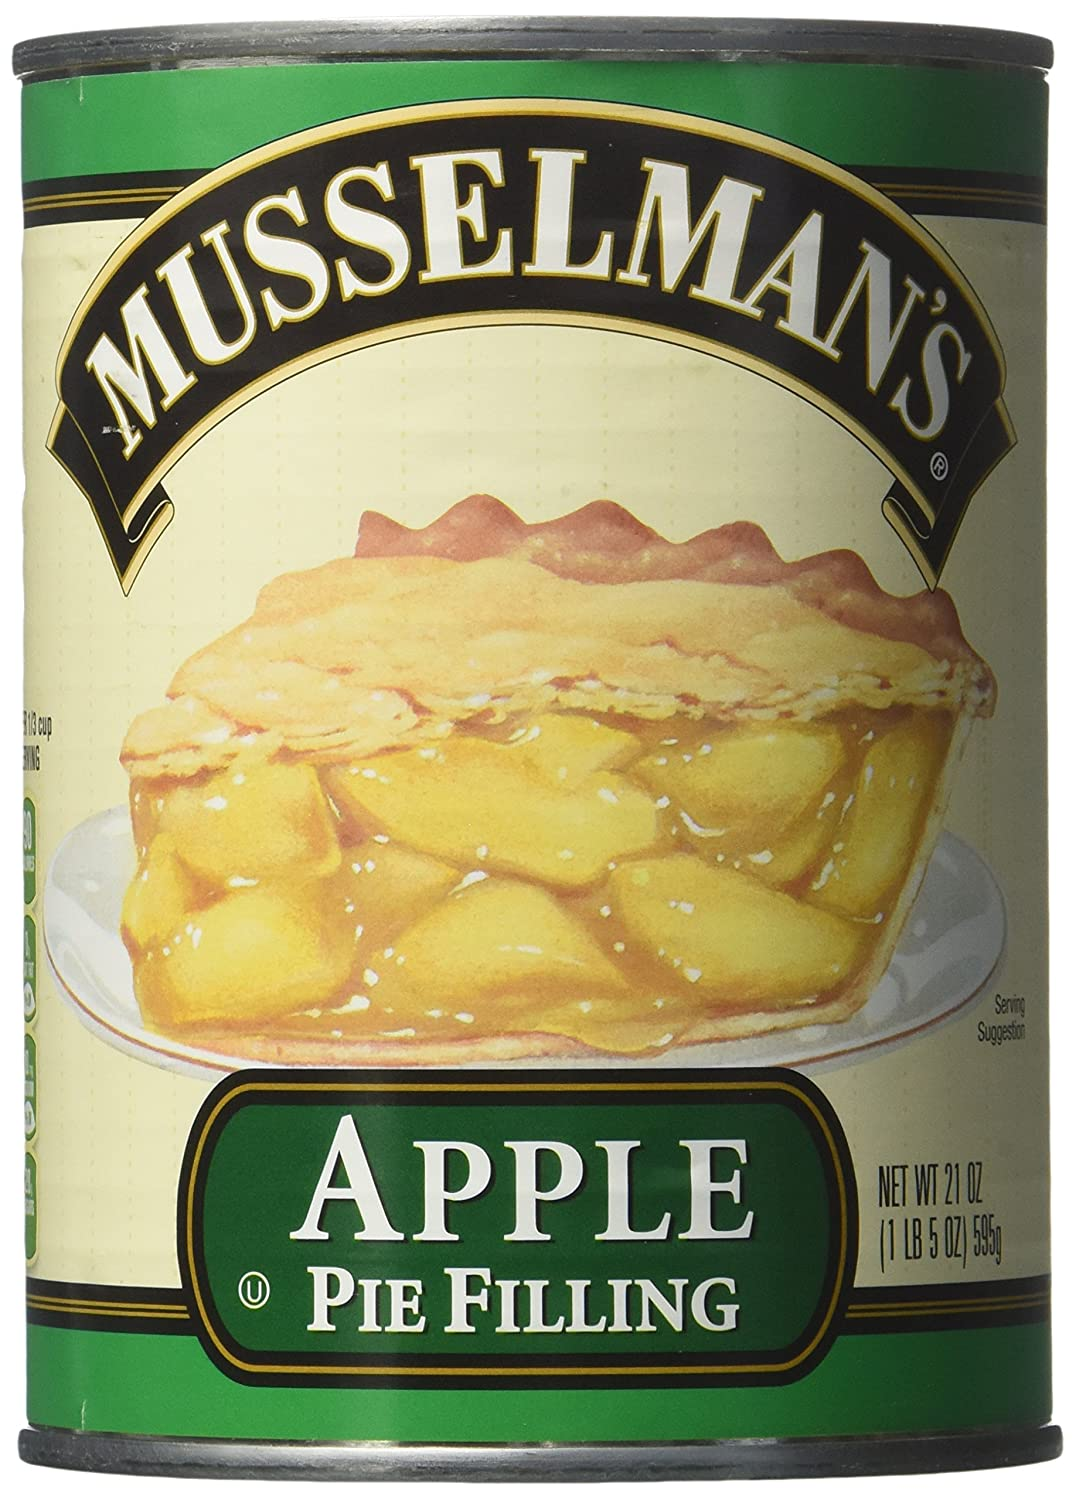 Musselman's Apple Pie Filling net wt 21OZ(pack of 2)